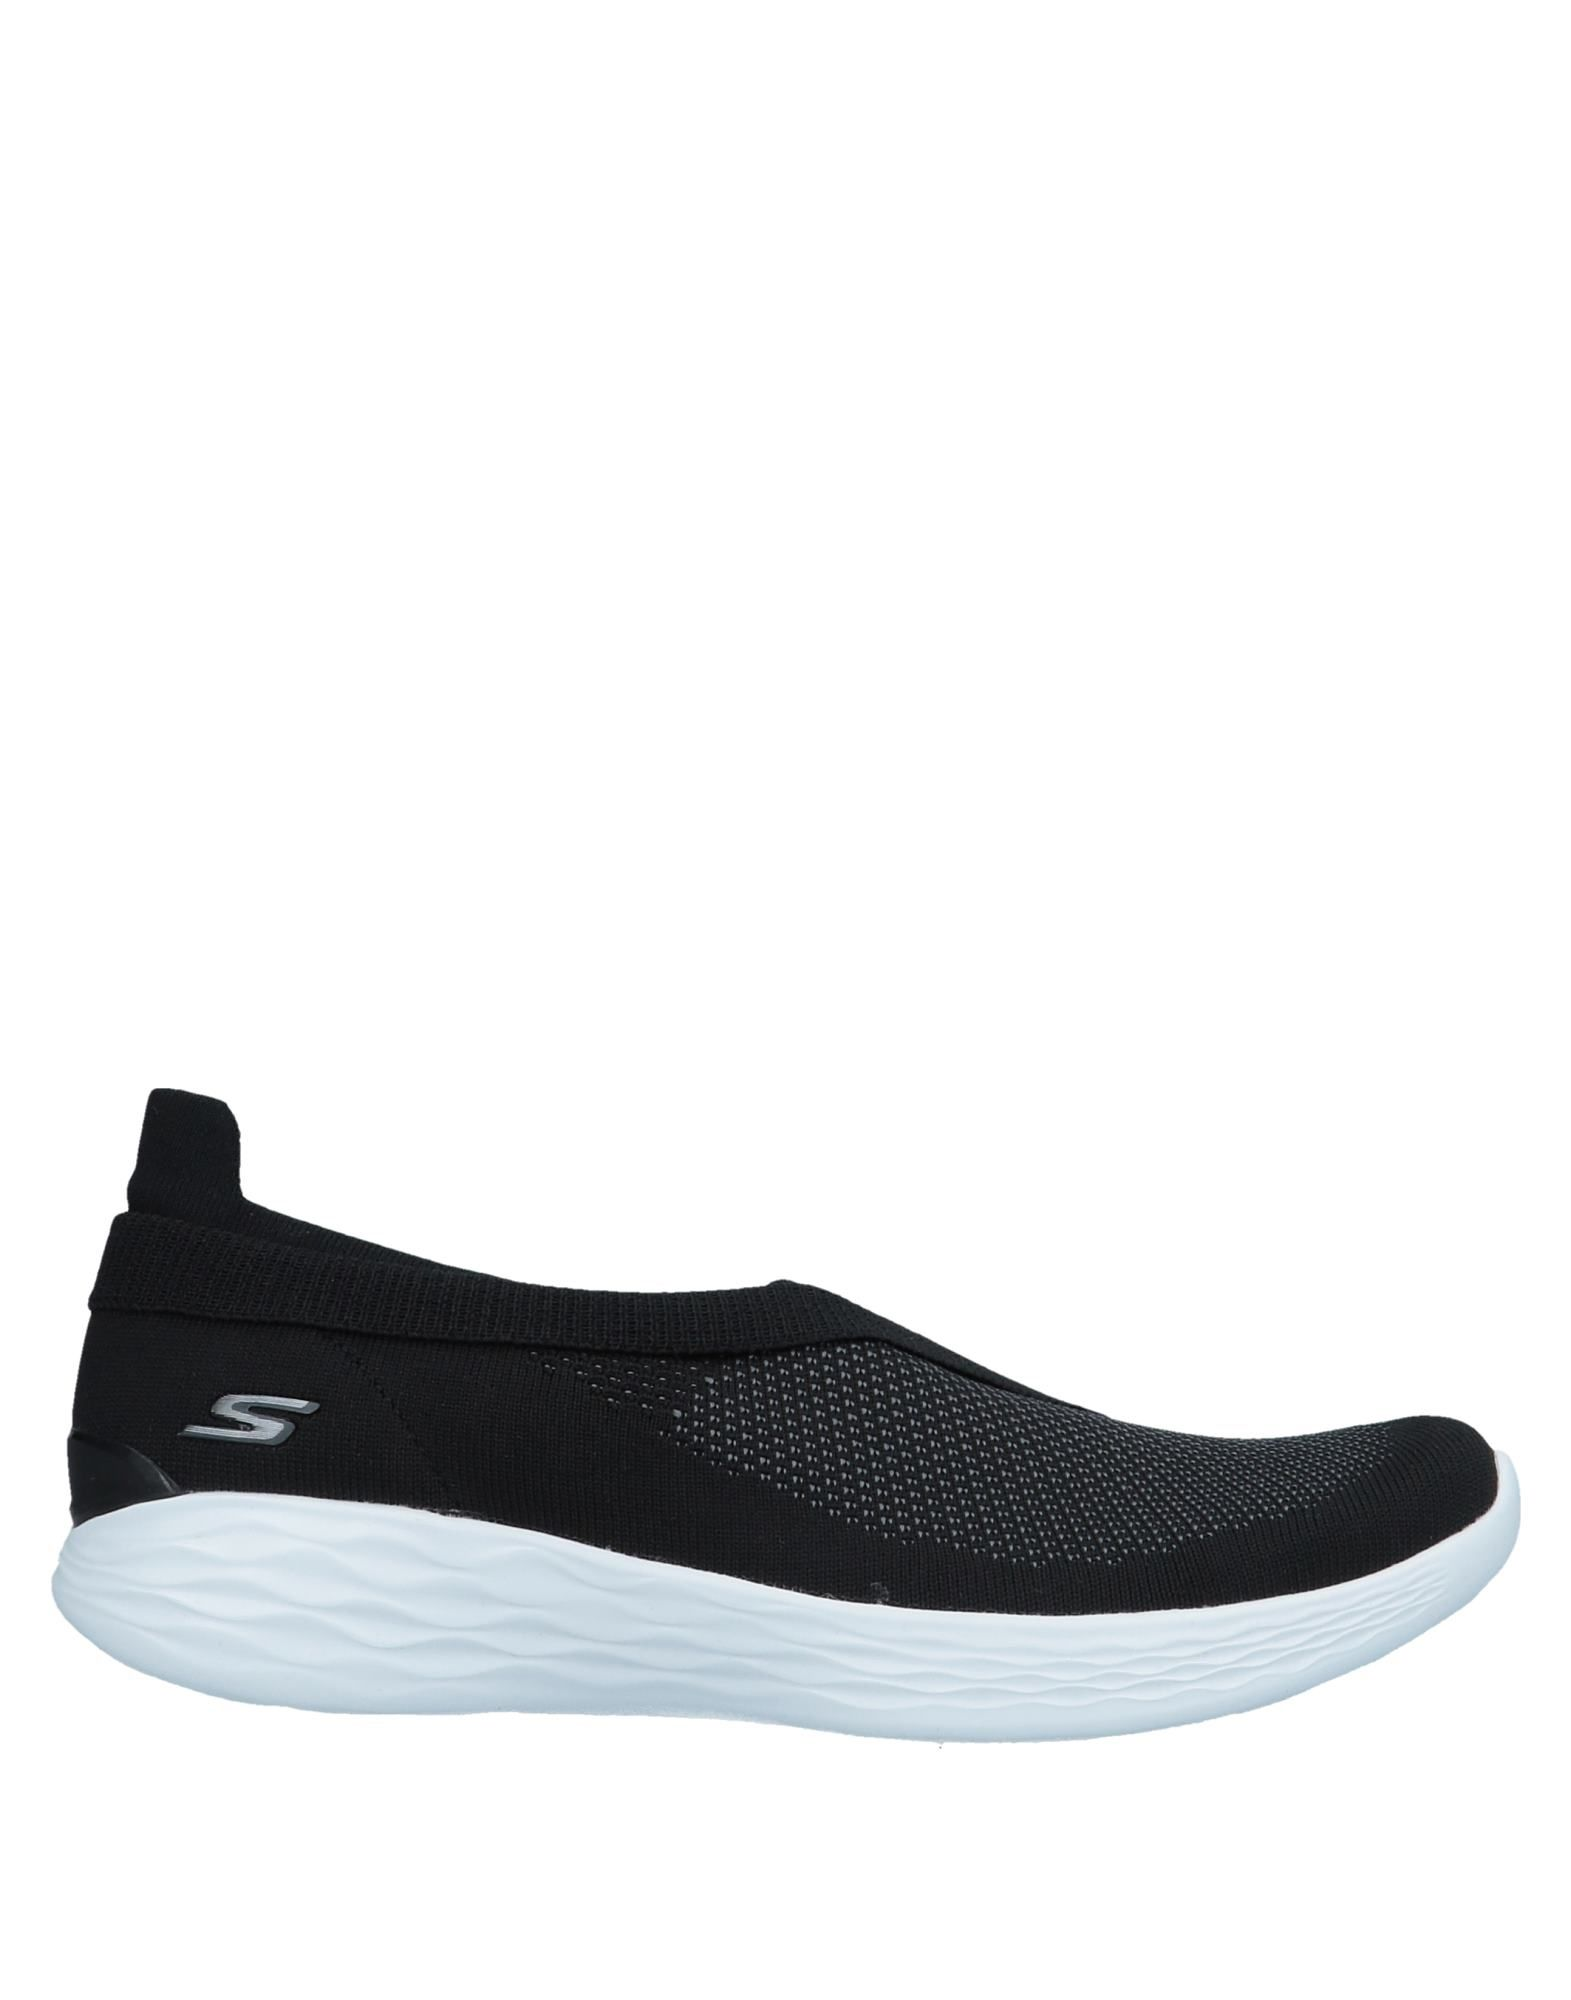 Skechers Sneakers  - Women Skechers Sneakers online on  Sneakers Canada - 11554778UI ae27ec